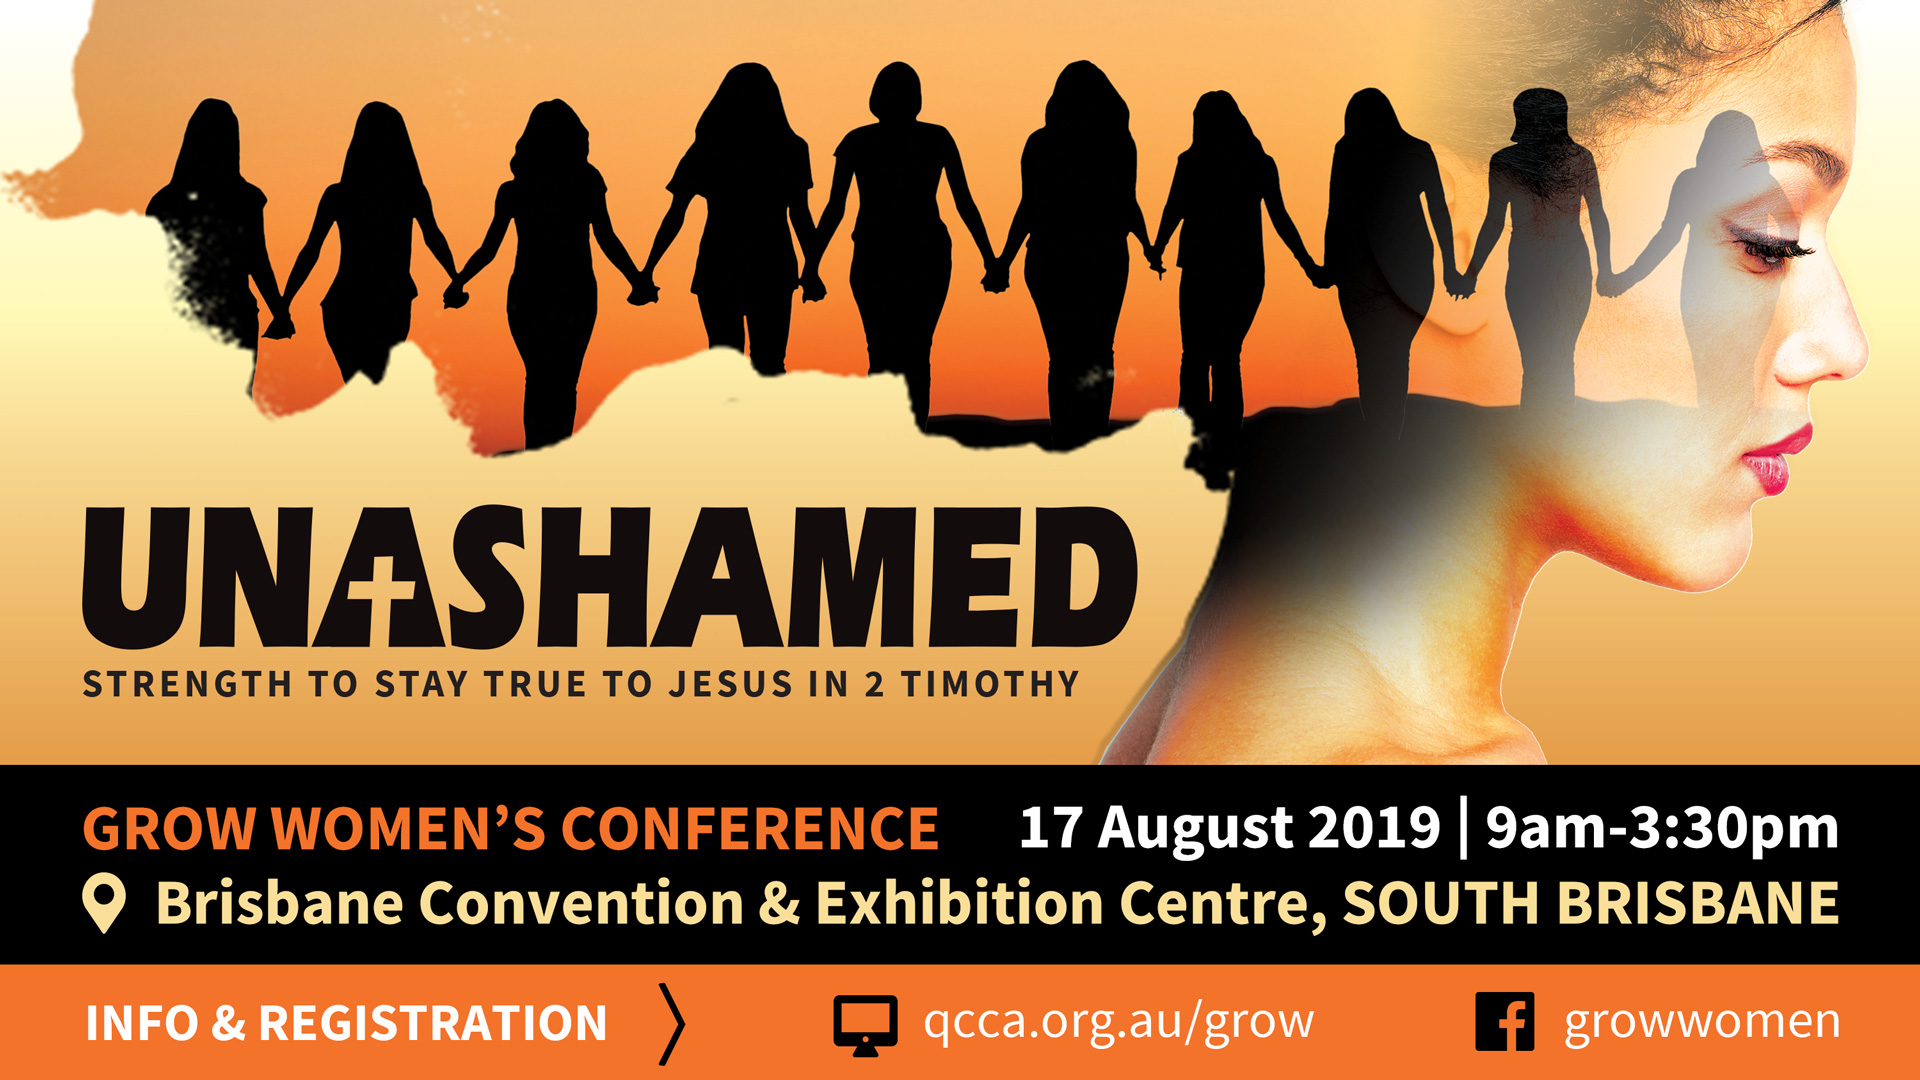 GROW Women's Conference 2019 – QCCA